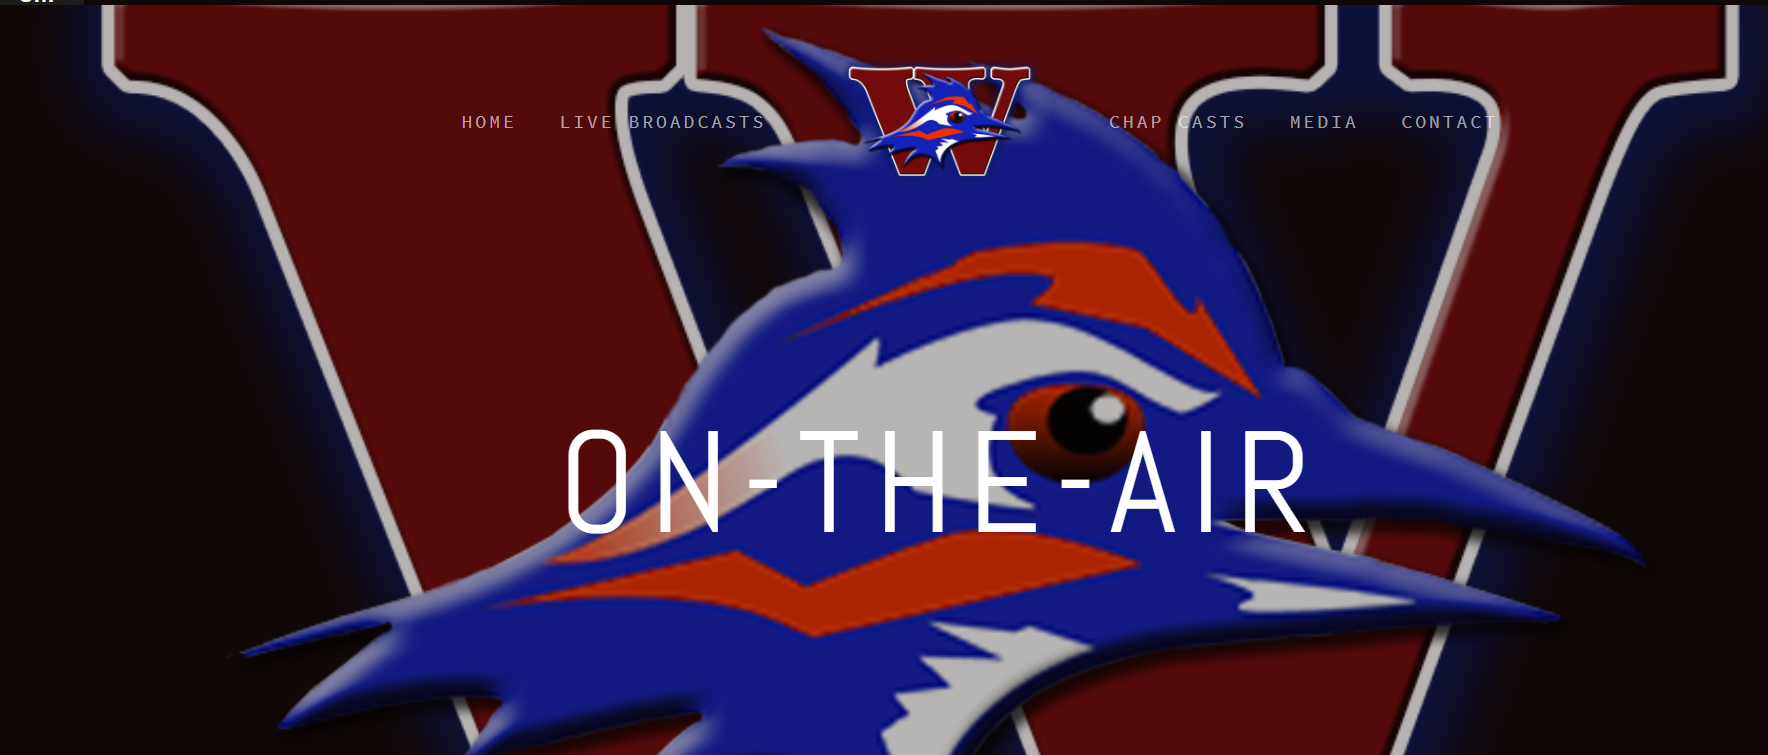 ON THE AIR — WESTLAKECHAPS.COM.png